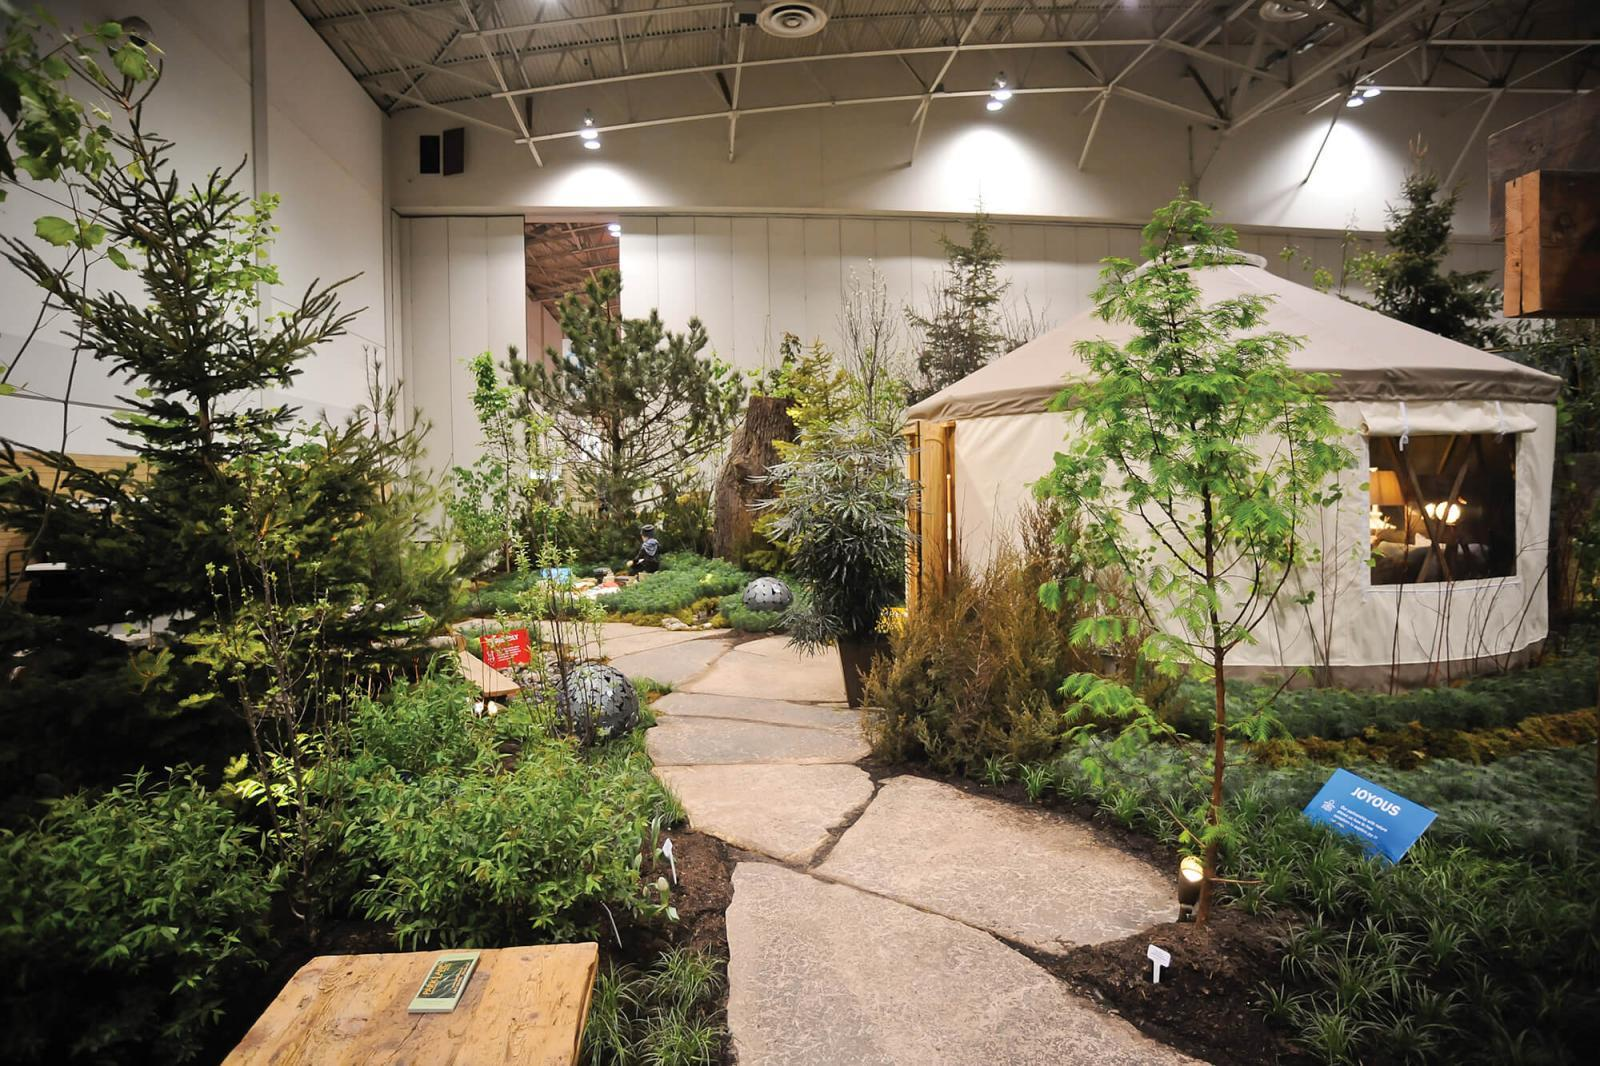 Canada Blooms 2014 feature garden winners